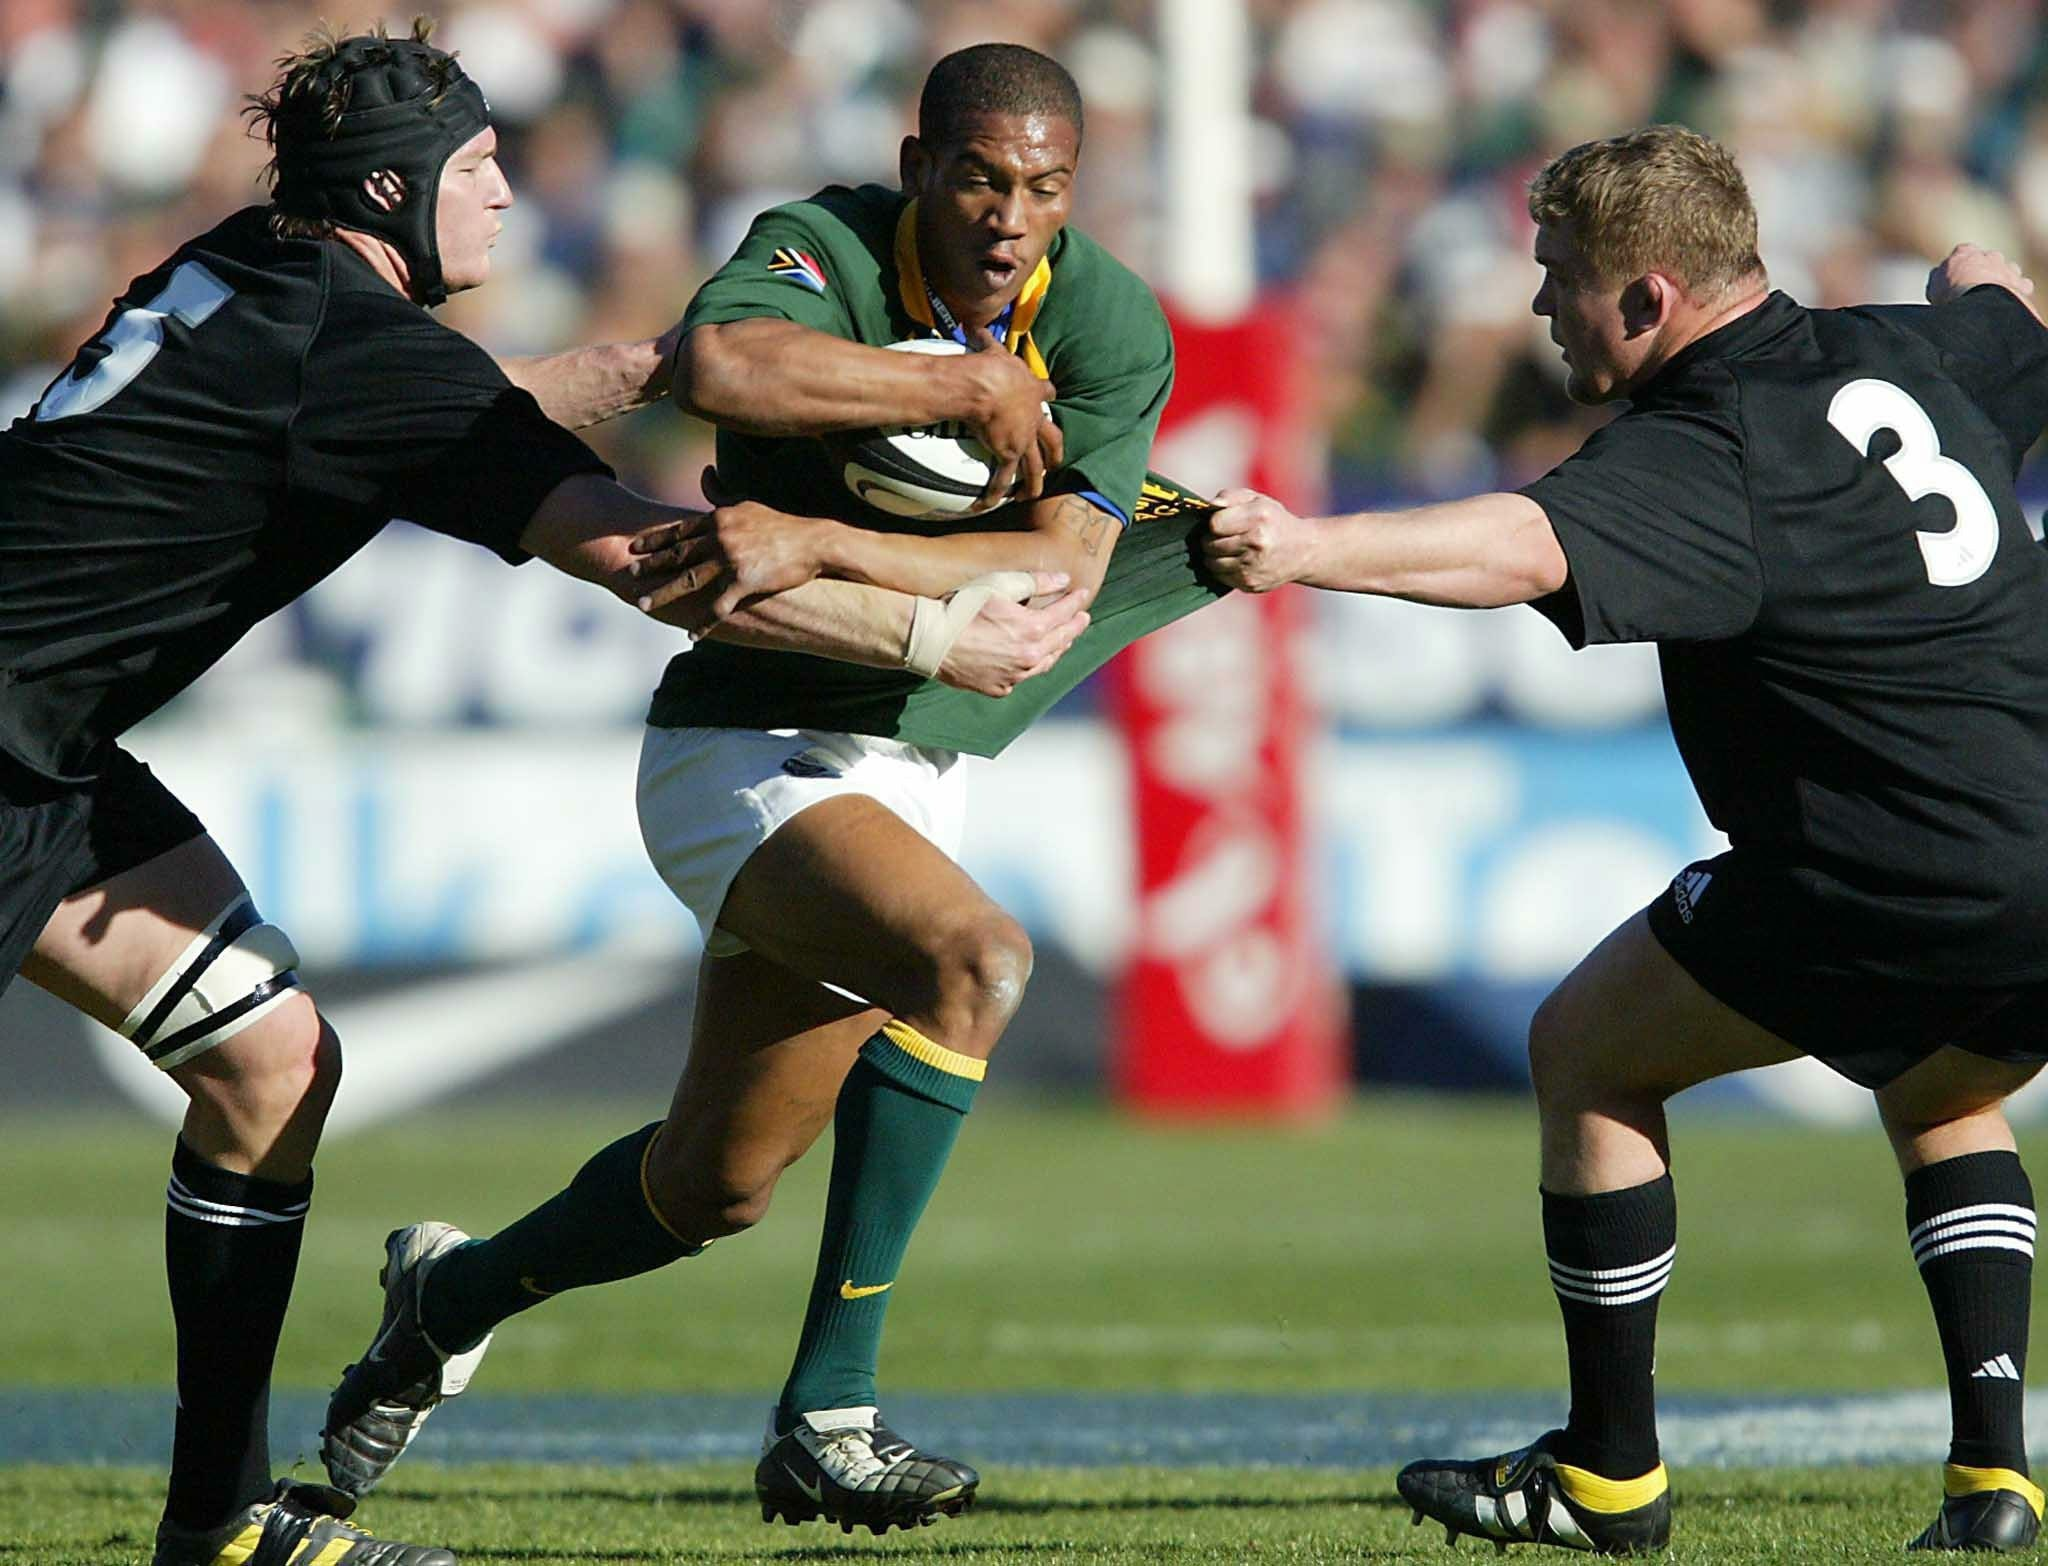 most popular sport in south africa